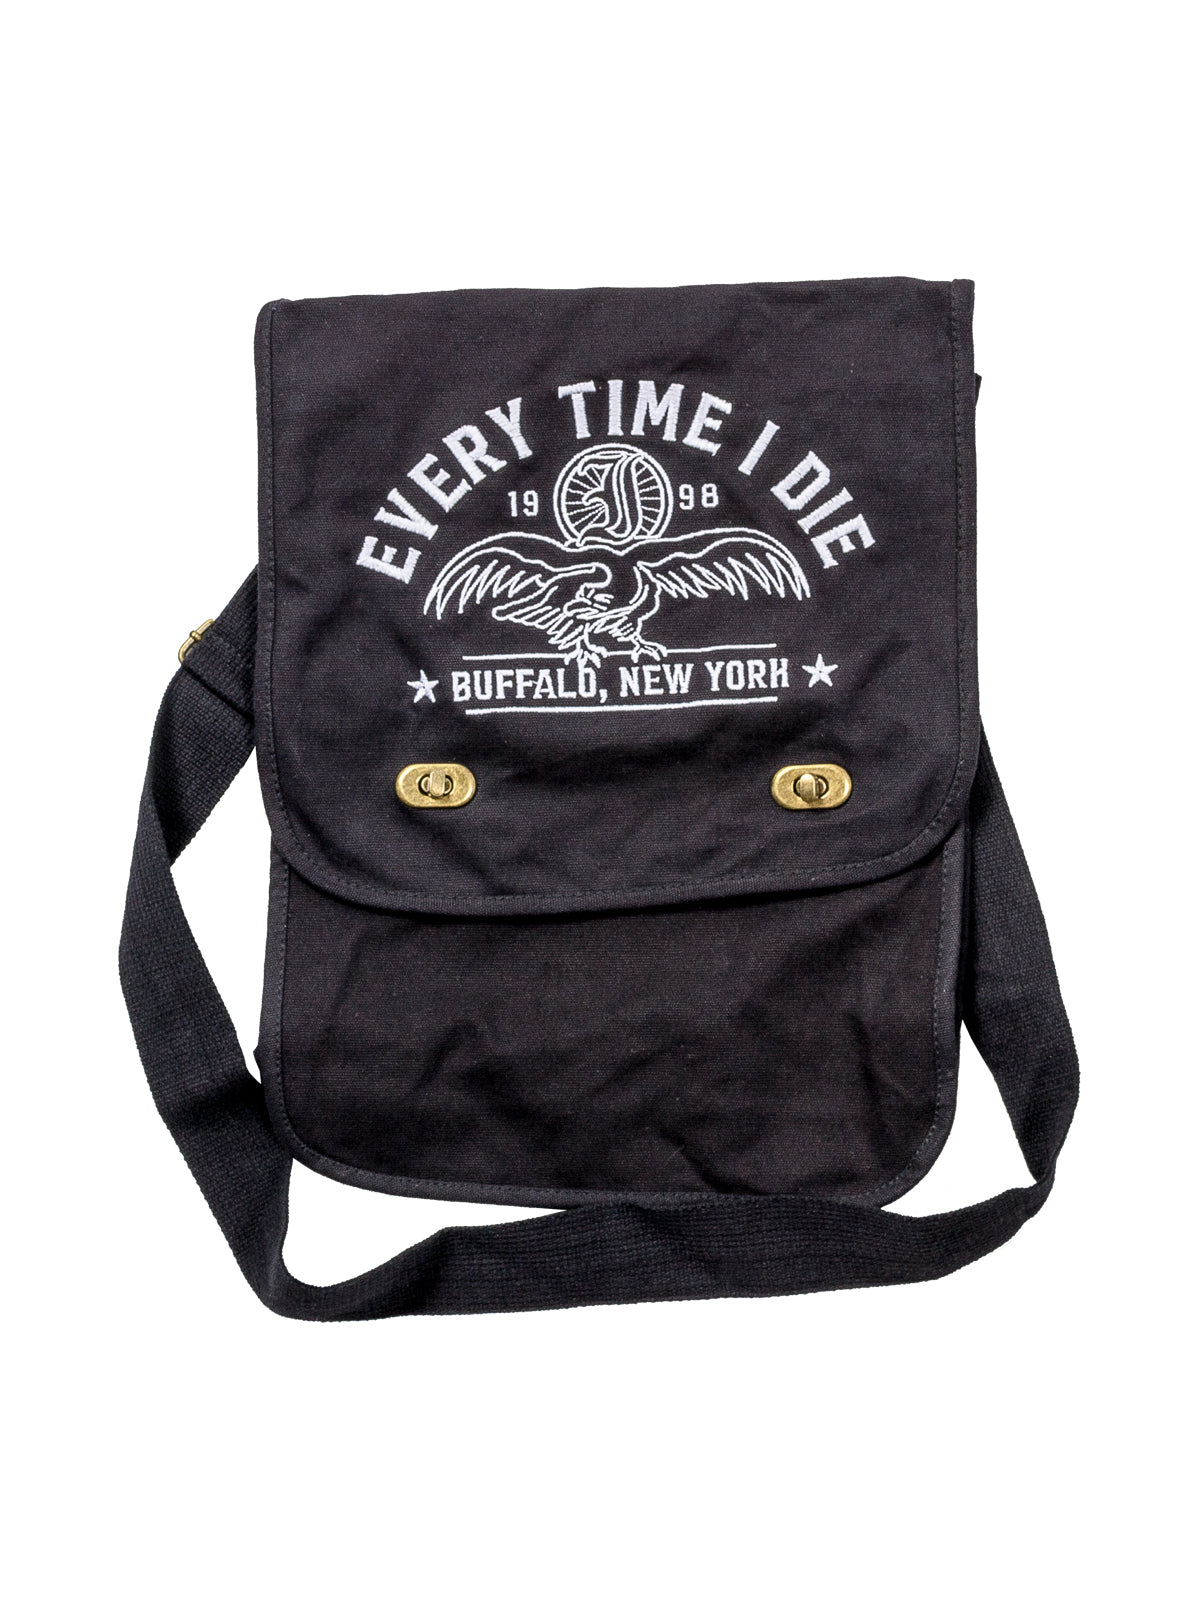 Every Time I Die - Embroidered Field Bag - Merch Limited